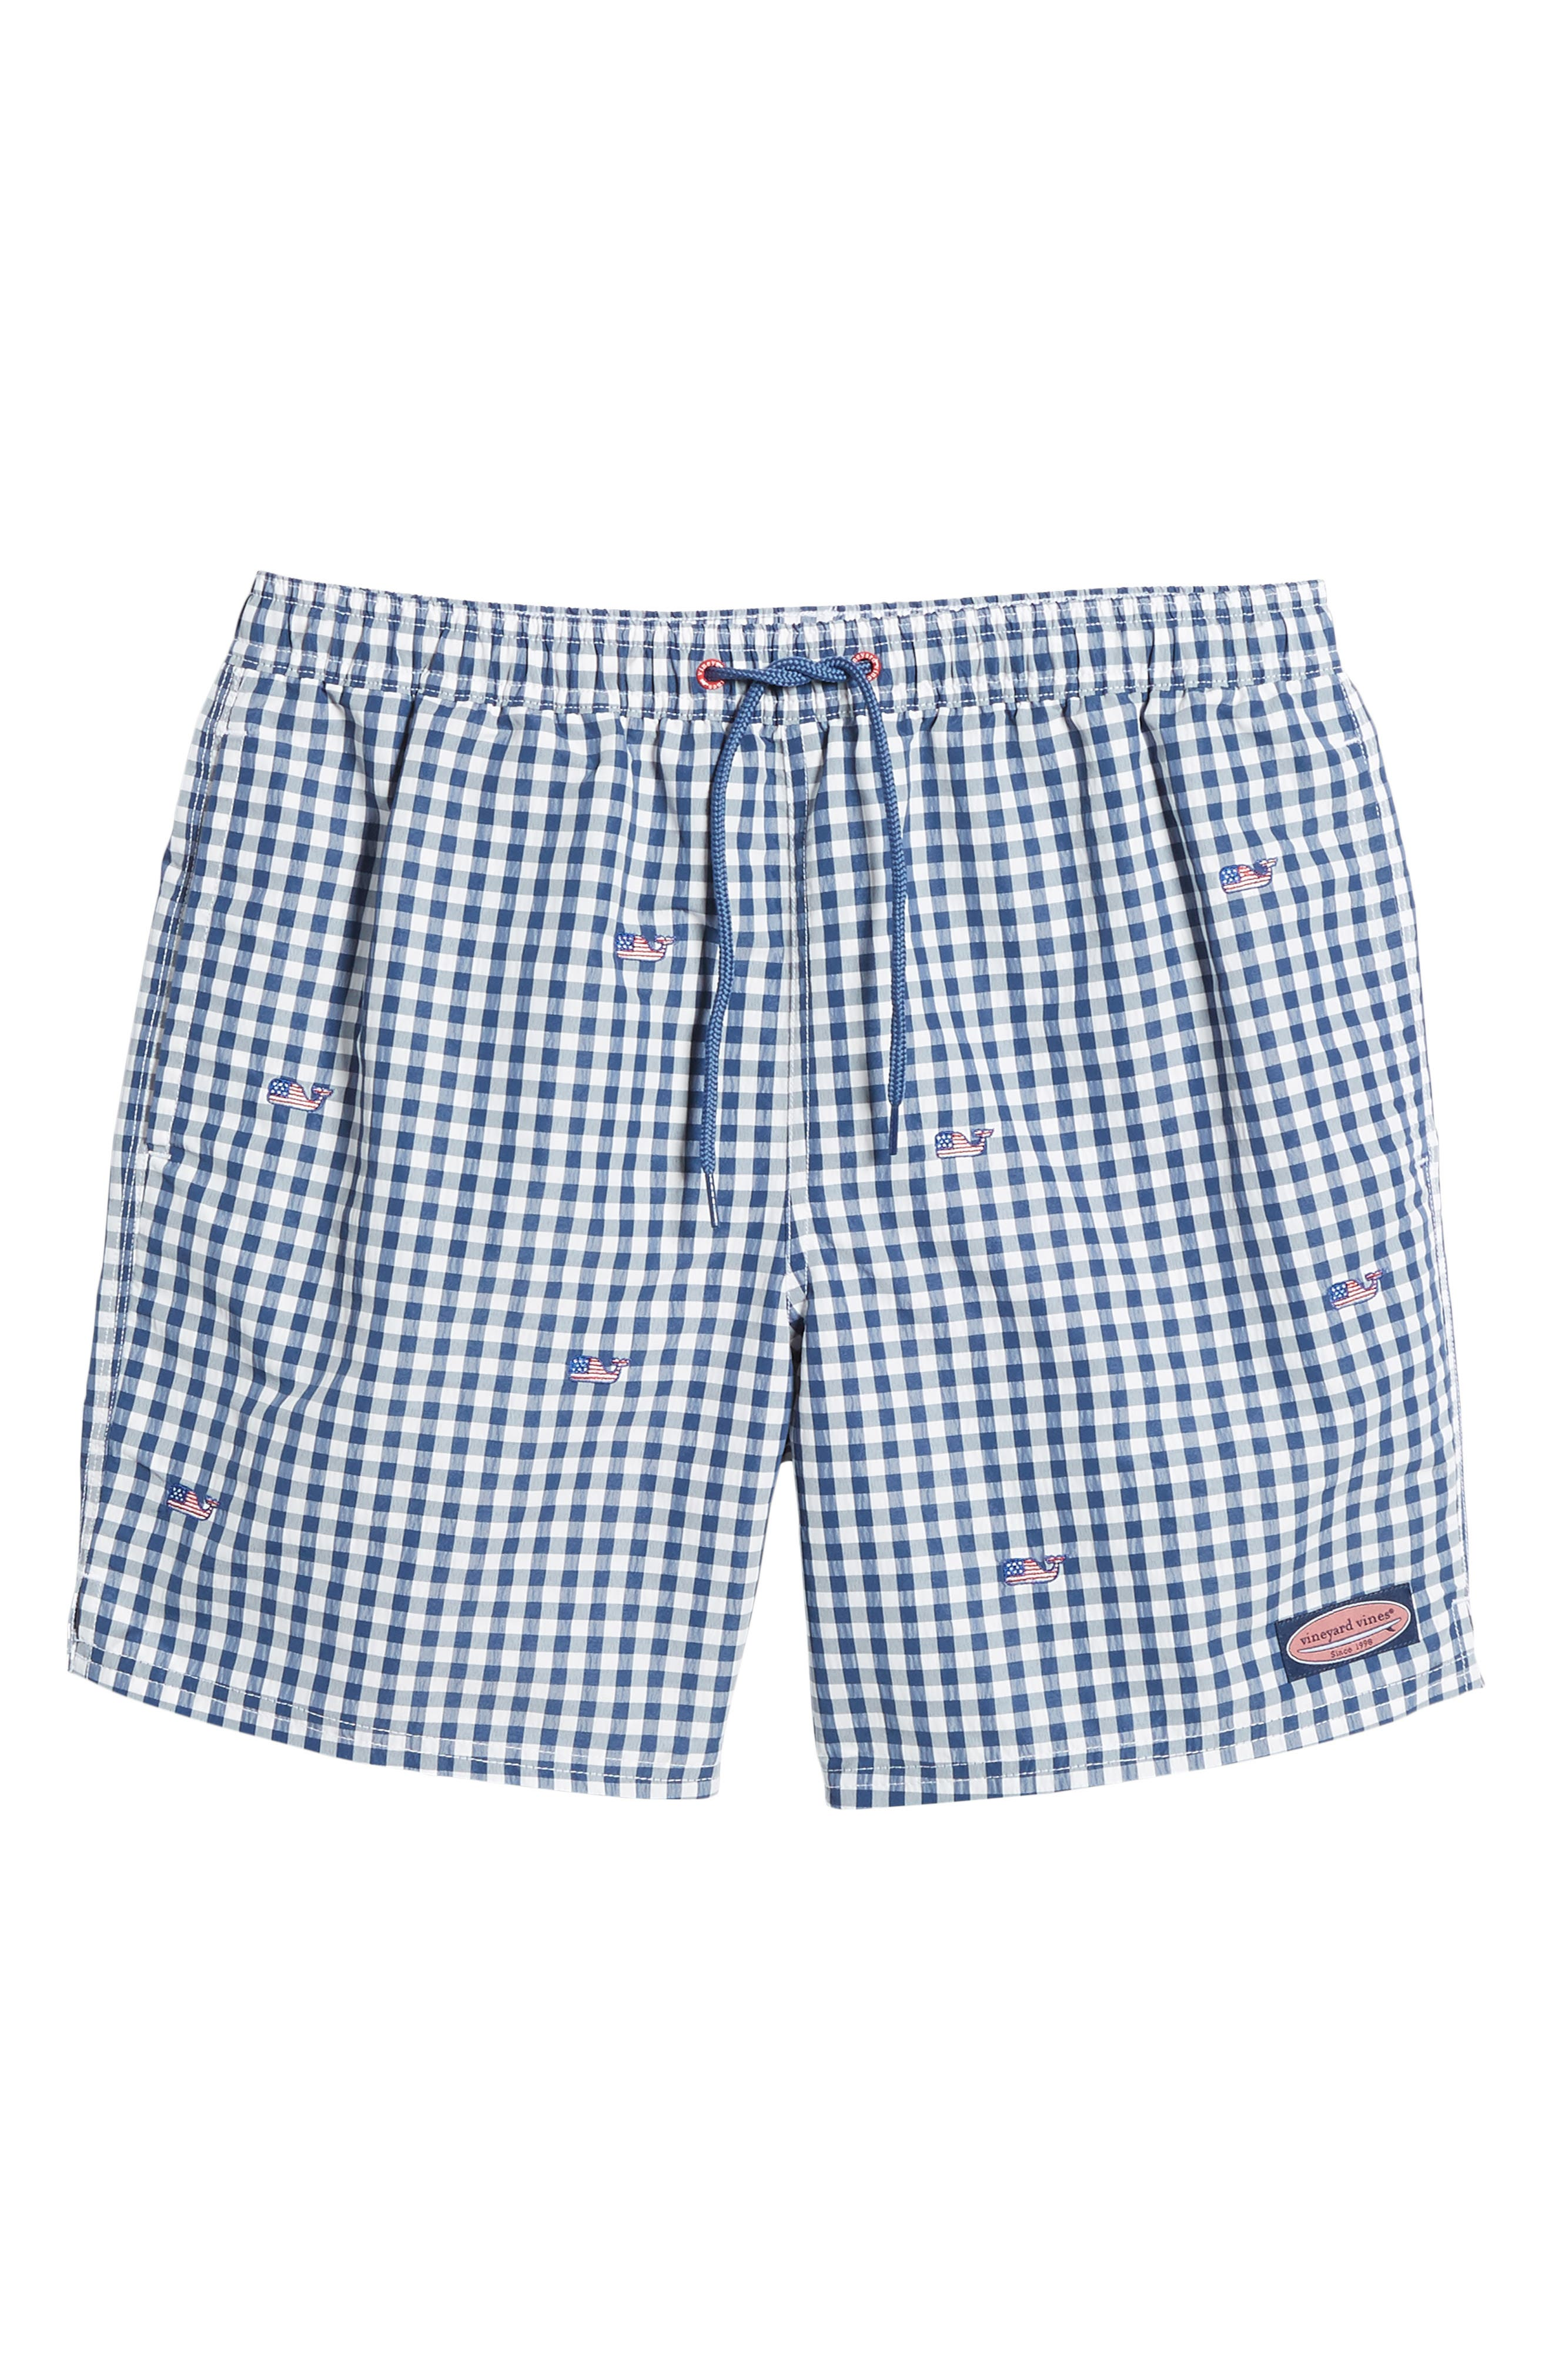 VINEYARD VINES,                             Chappy Flag Whale Embroidered Gingham Swim Trunks,                             Alternate thumbnail 6, color,                             461